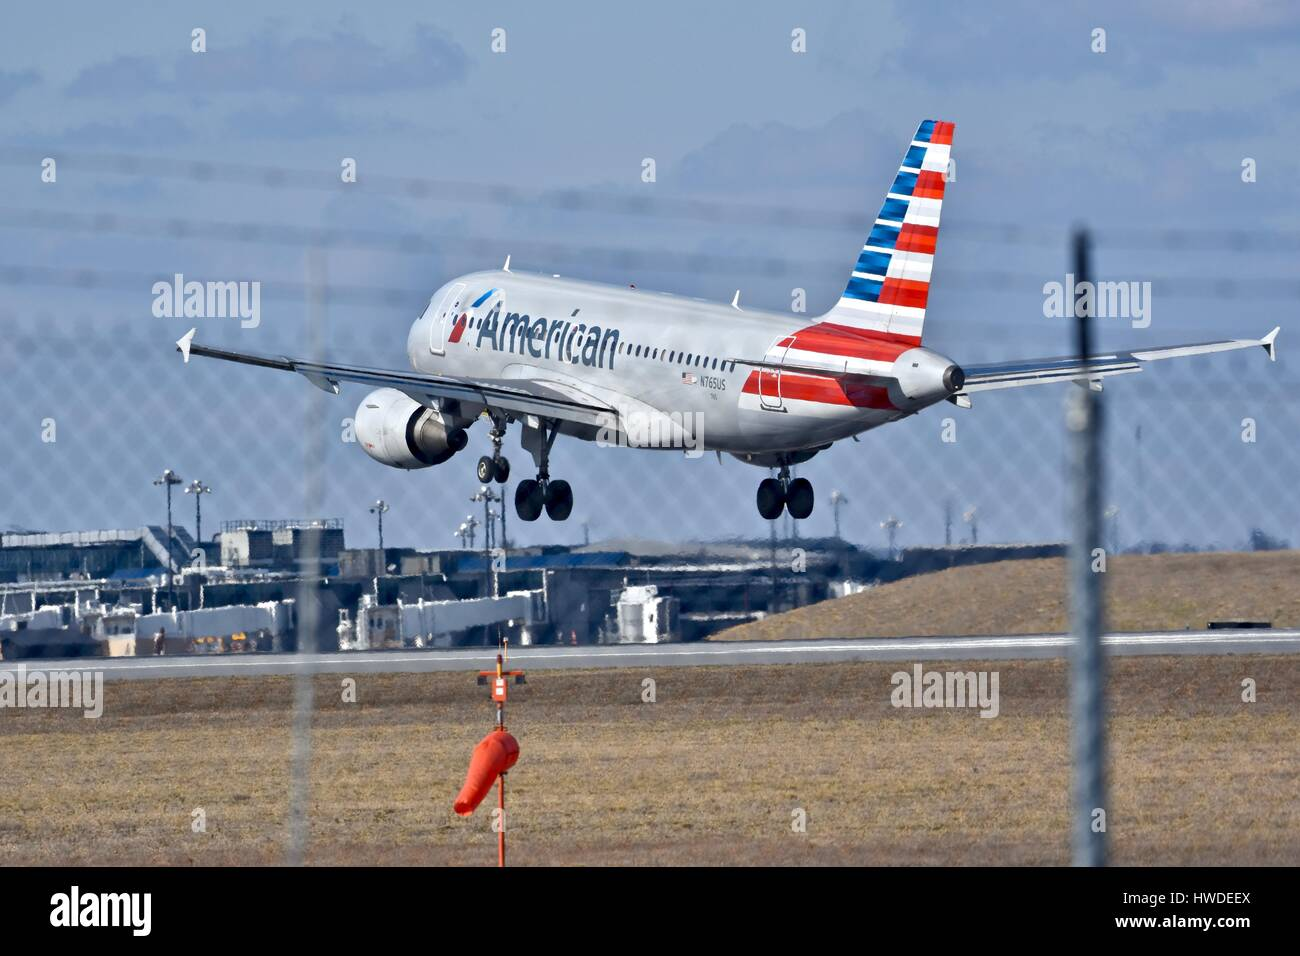 American Airlines Plane Preparing To Land At The Bwi